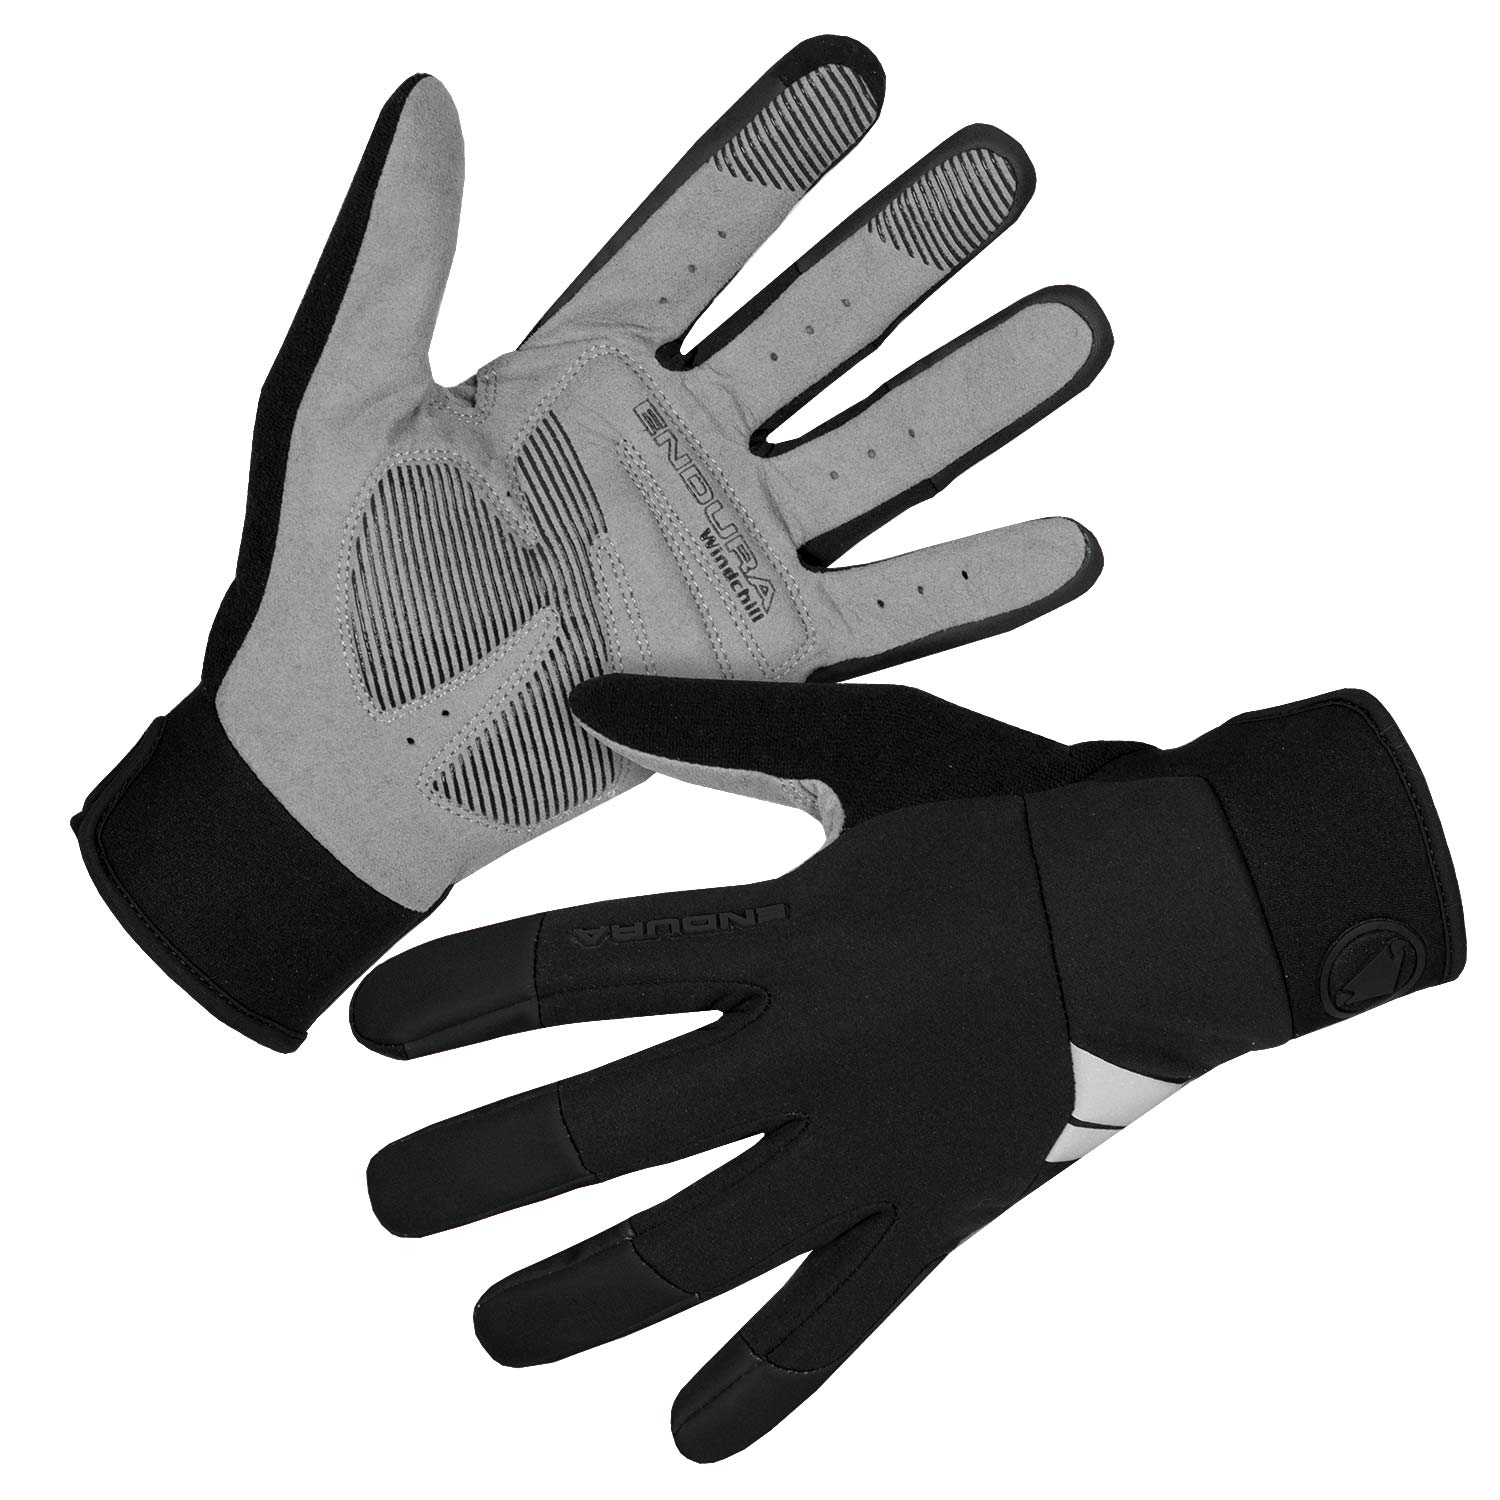 Endura Windchill (Small) Windproof Cycling Gloves